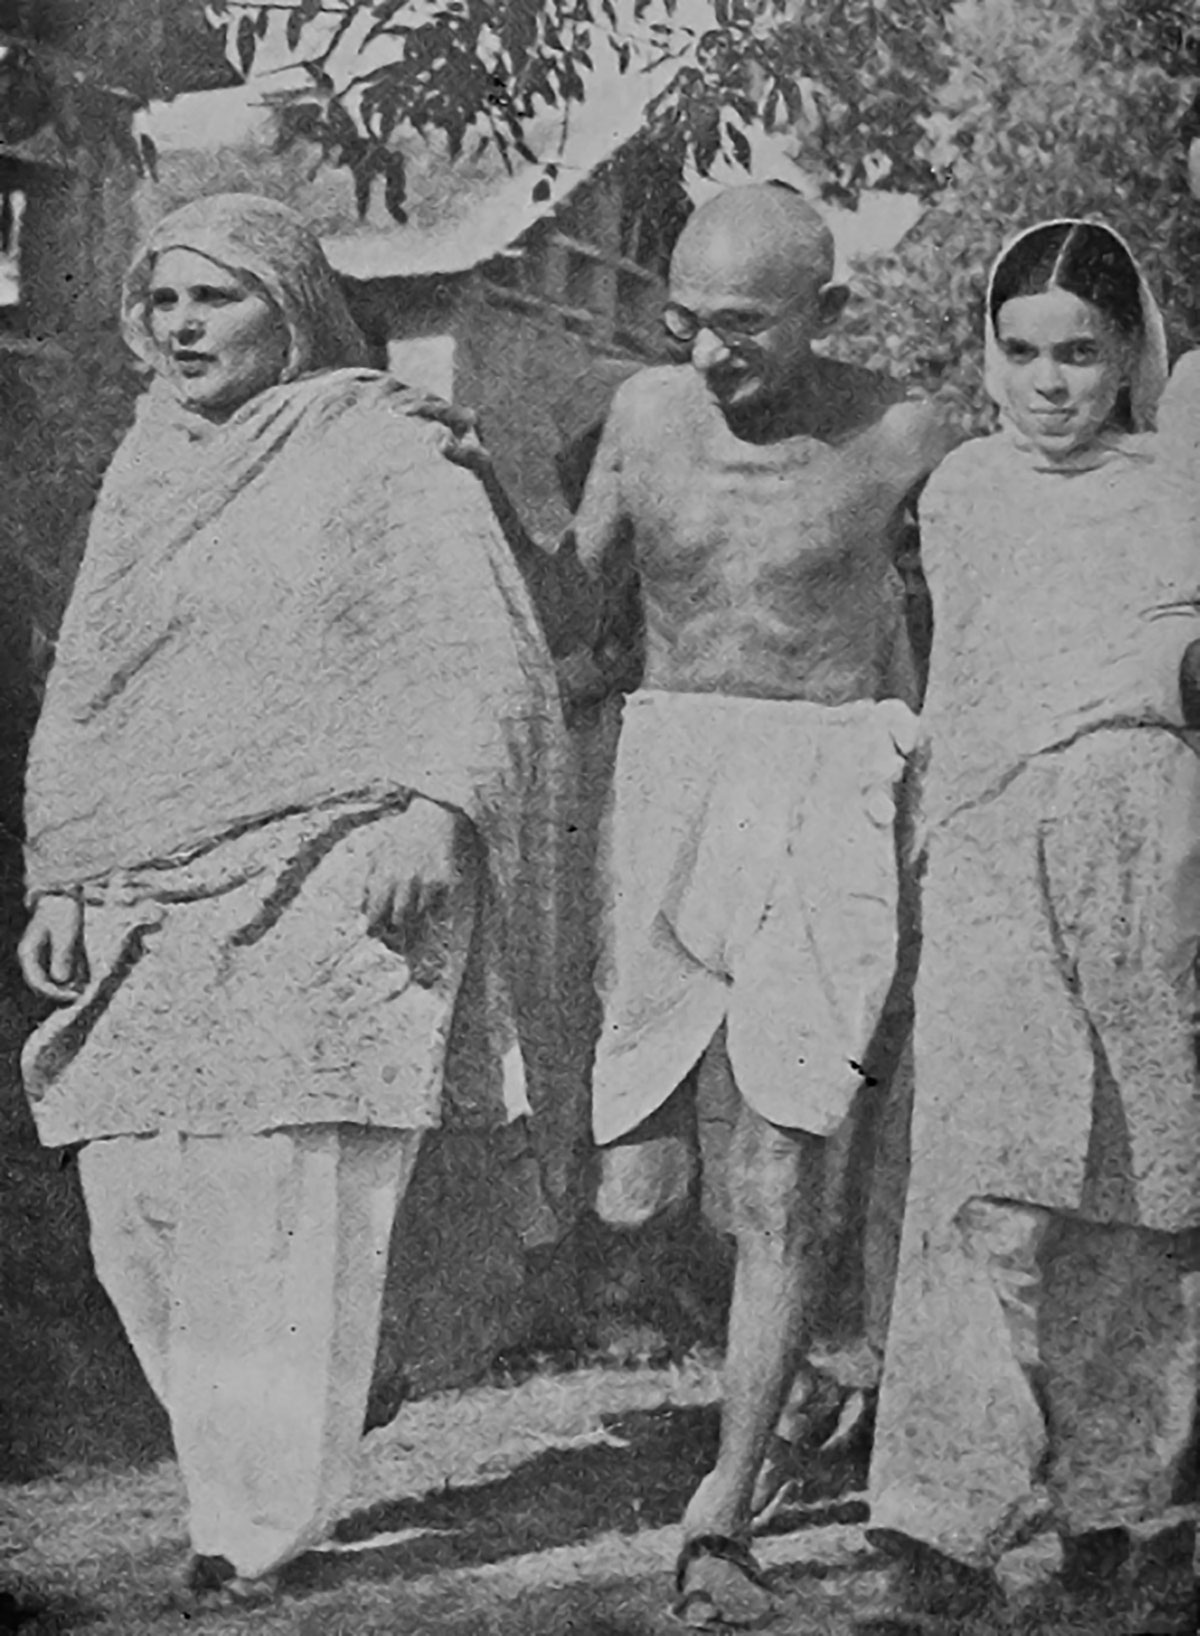 M-K-Gandhi-during-his-only-visit-to-Kashmir.-In-this-July-1947-photograph-in-Srinagar, he is seen walking with Begum Akbar Jehan, wife of Sheikh Abdullah, and Khalida, her daughter.